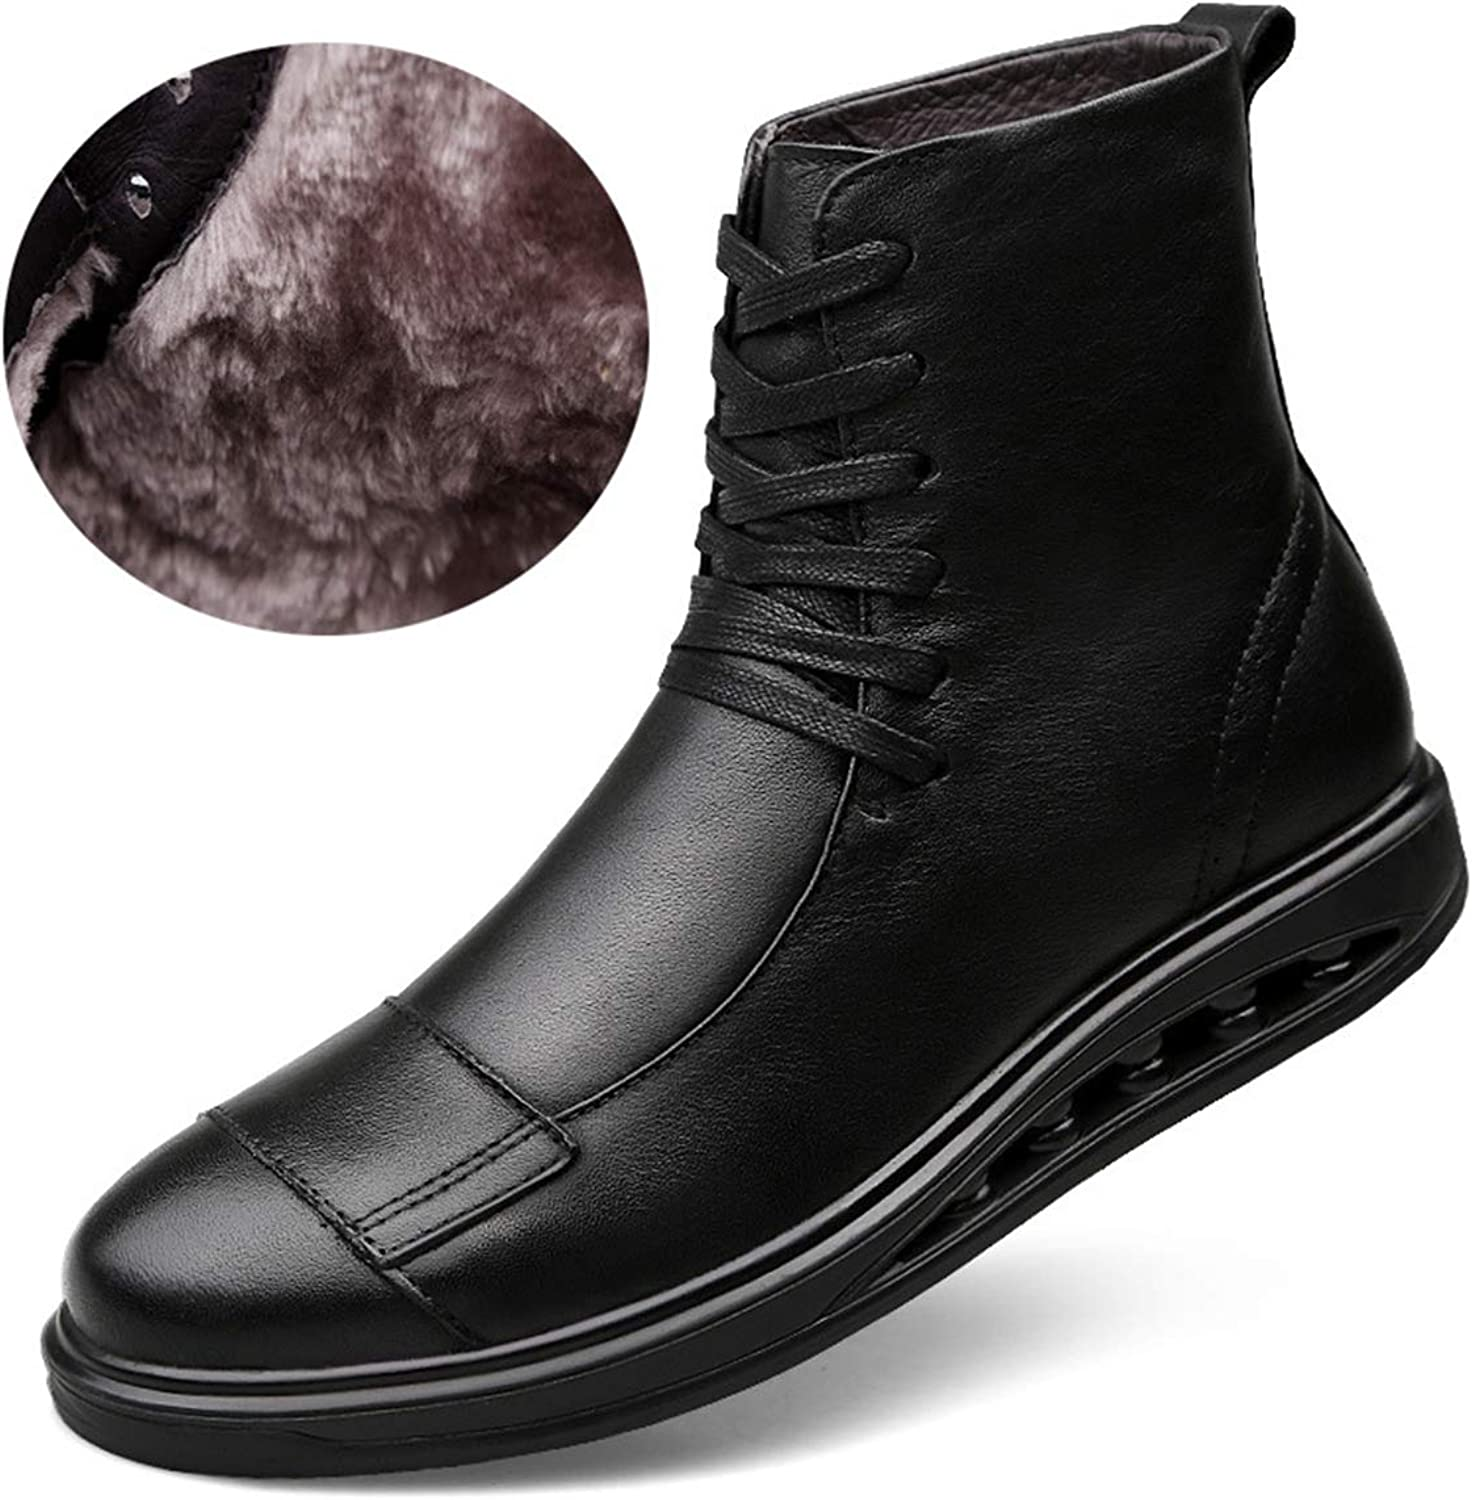 Men's Outdoor Artificial Leather Military Boots Lace UP Rubber Soles Tooling Boots,Single shoes & Plus Cotton,Blackpluscotton,42